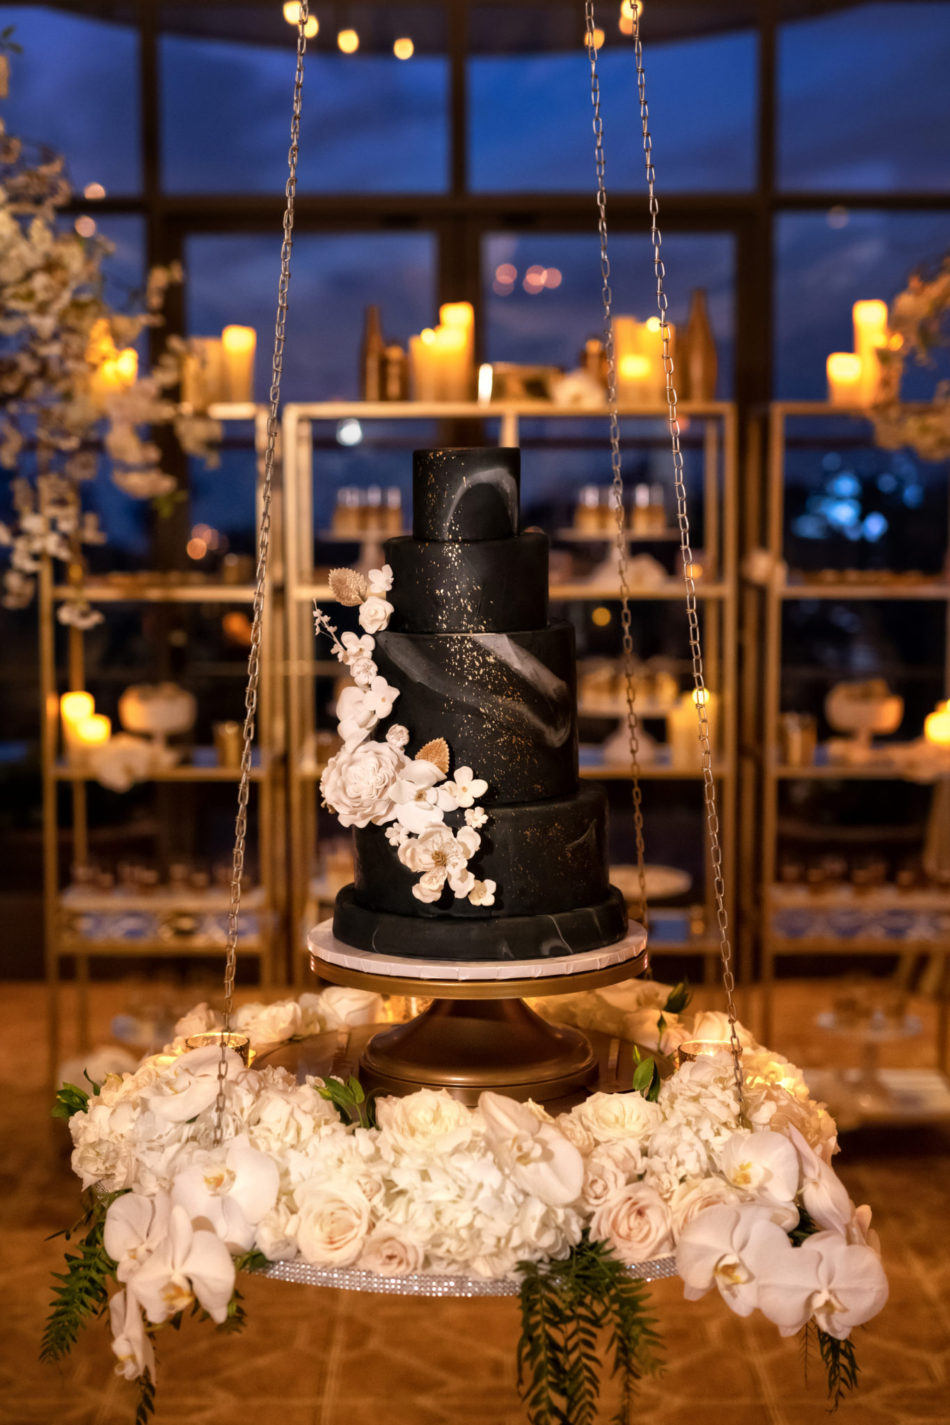 black wedding cake, black cake, black and white cake,floral design, florist, wedding florist, wedding flowers, orange county weddings, orange county wedding florist, orange county florist, orange county floral design, flowers by cina